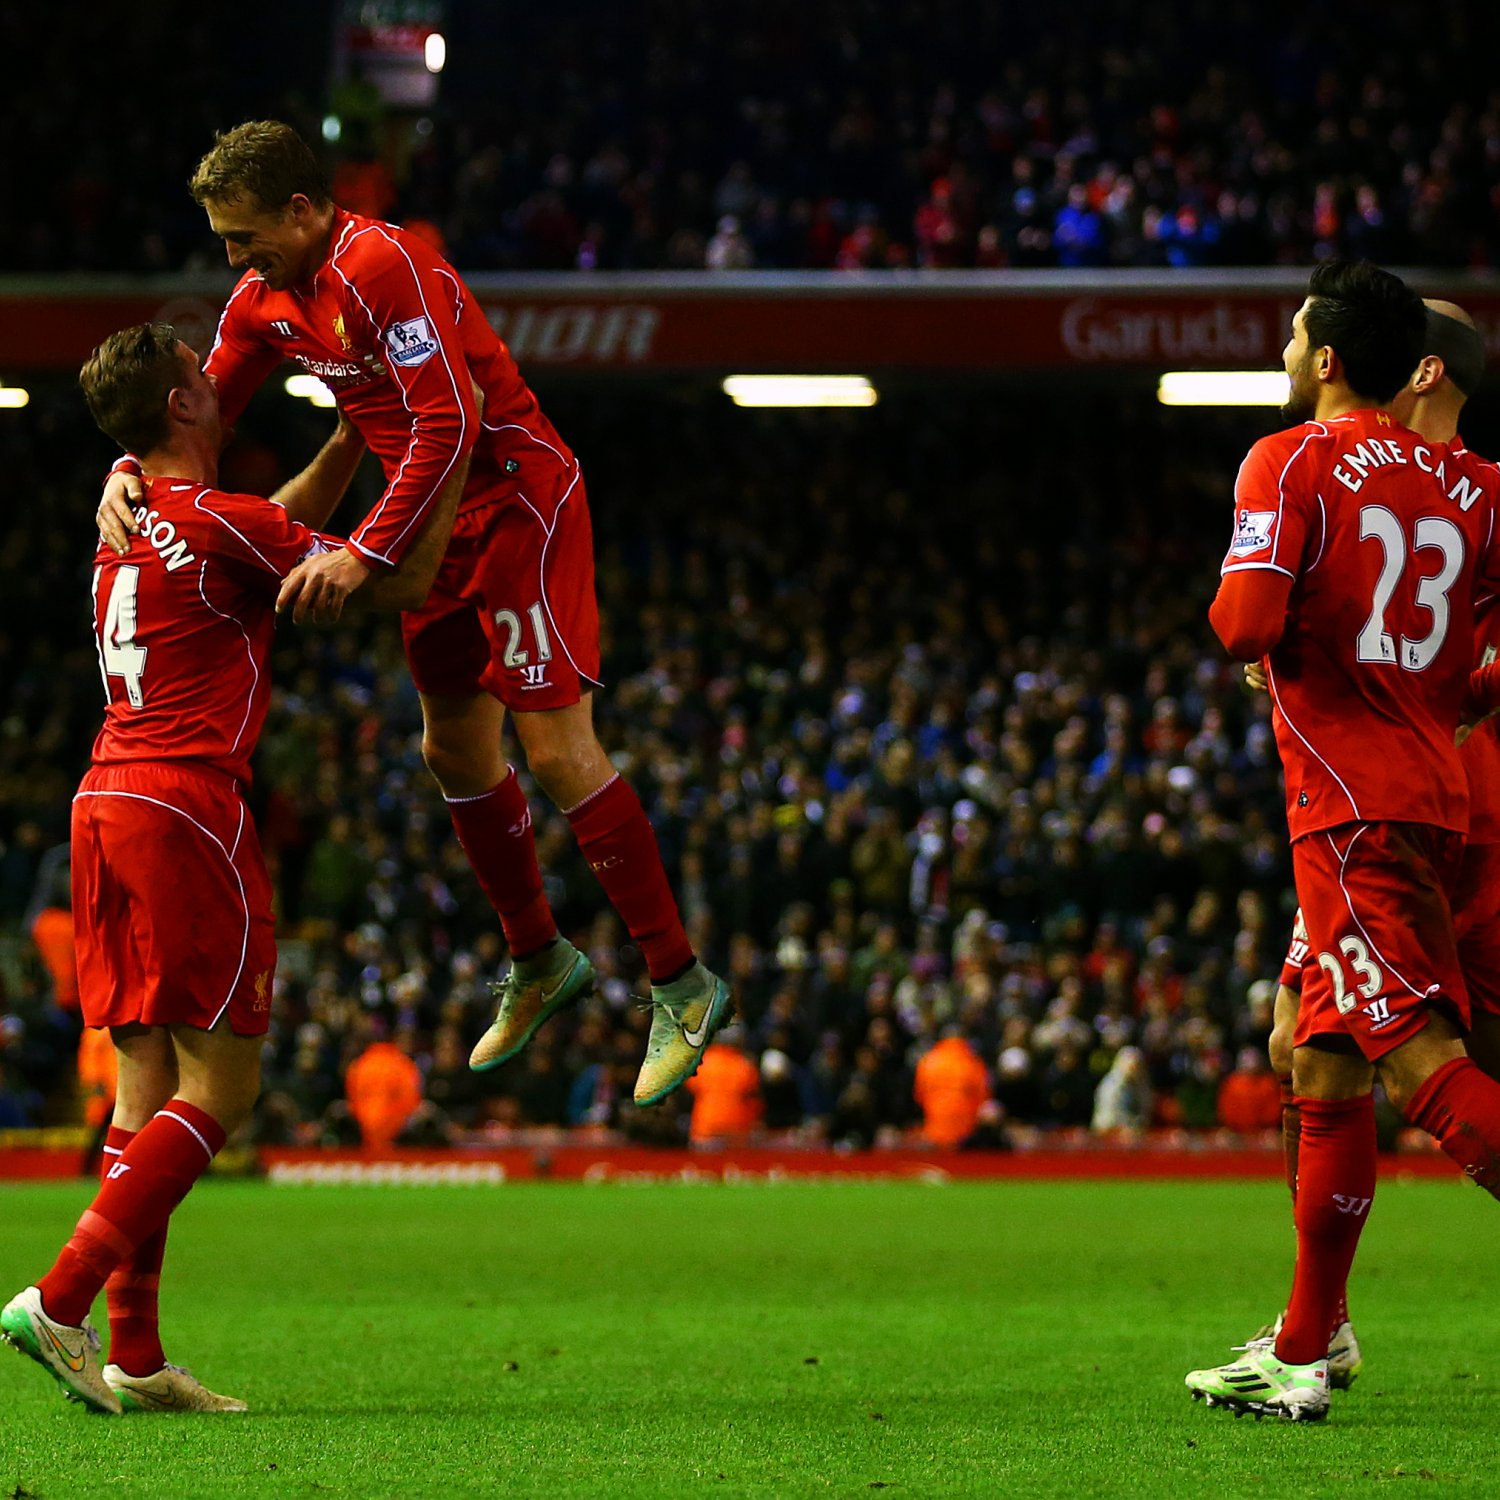 Live Streaming Soccer News Liverpool Vs Benfica Live: Liverpool Vs. Leicester: Live Score, Highlights From